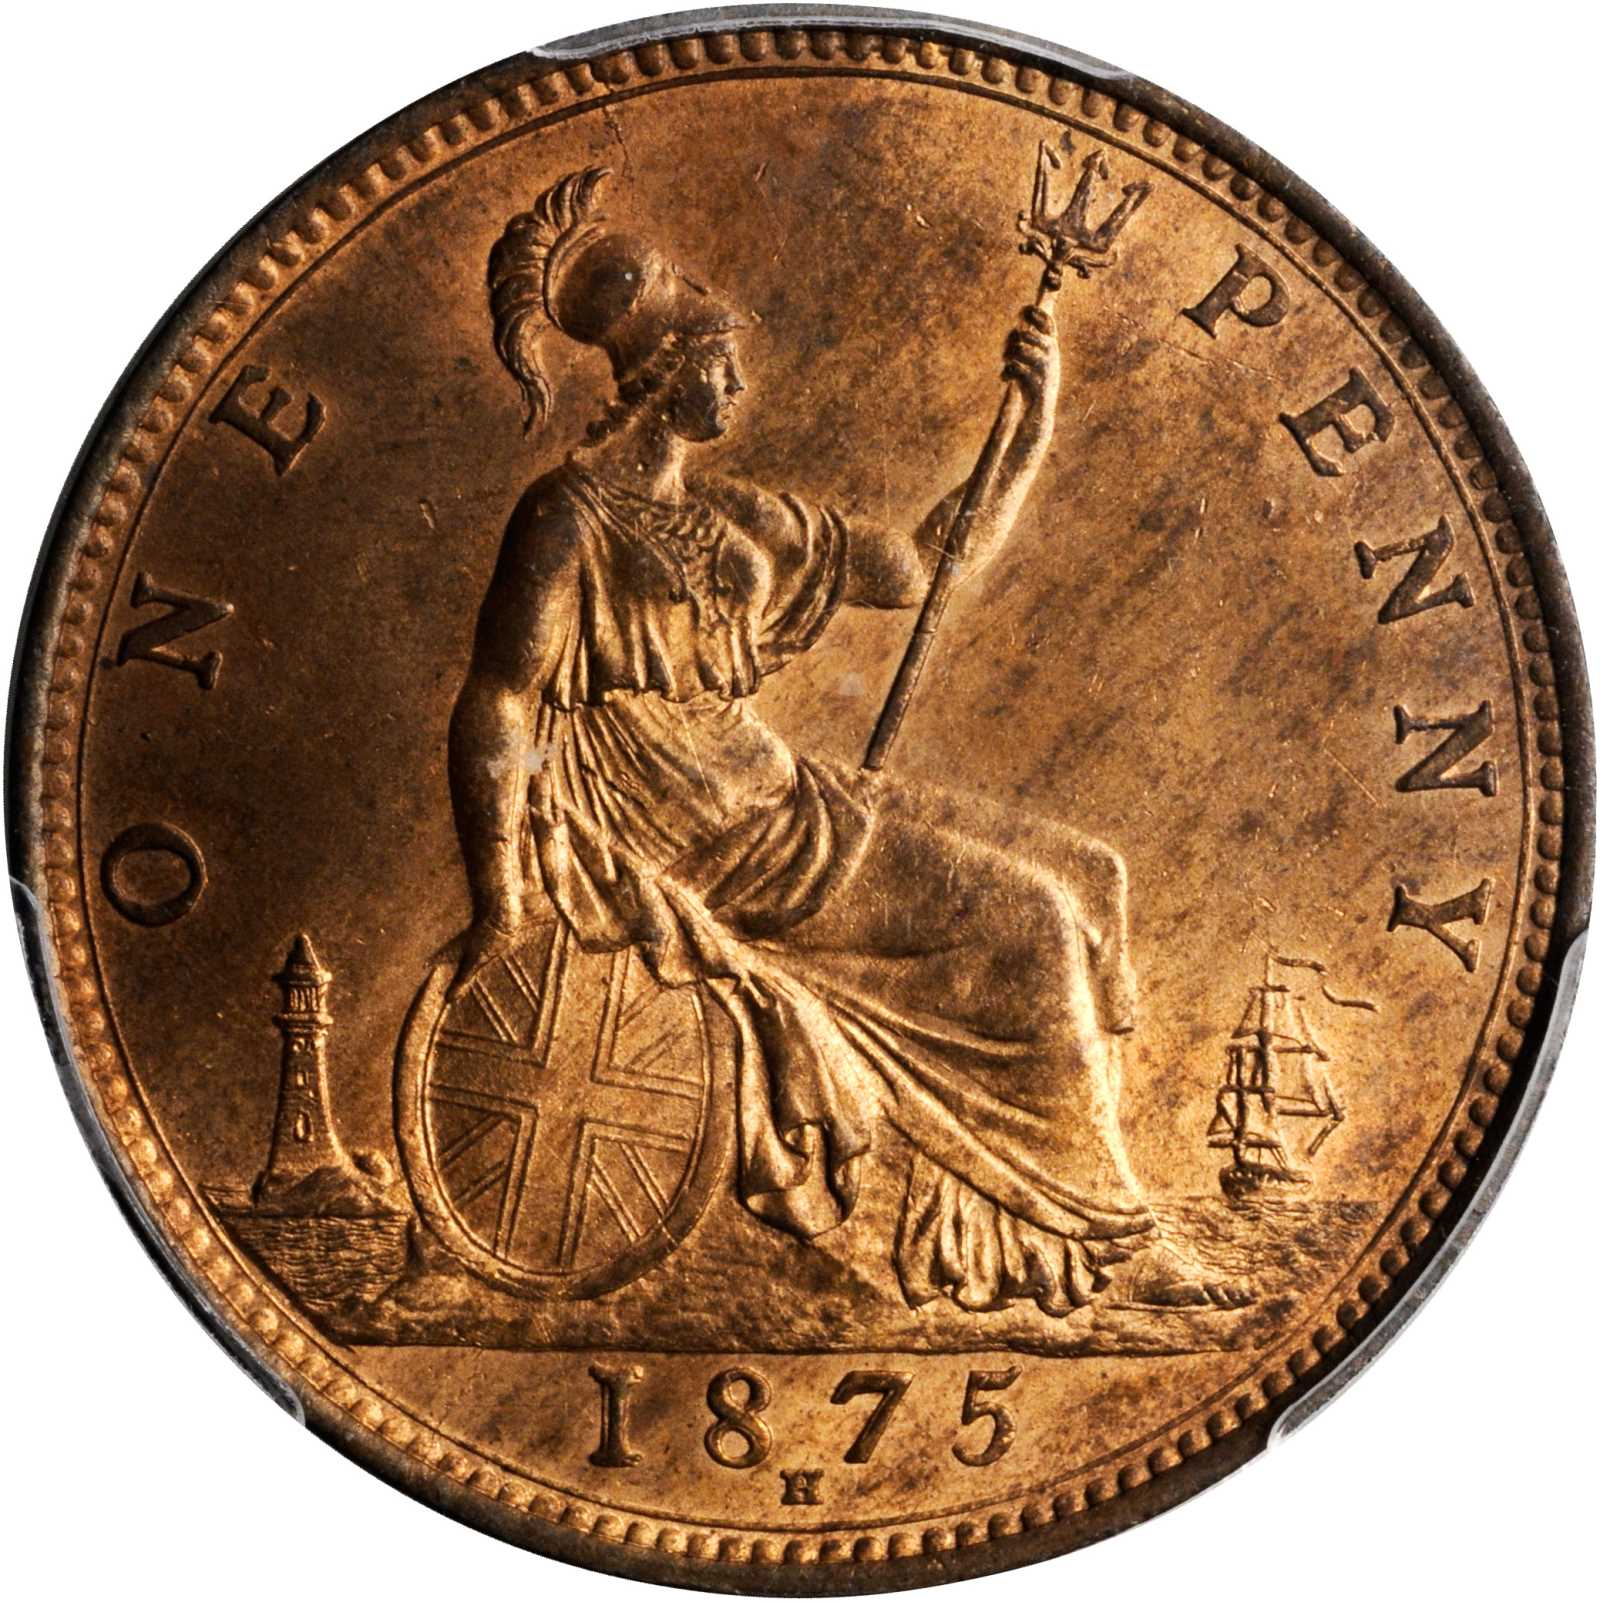 Penny (Britannia, third design): Photo Great Britain 1875-H penny